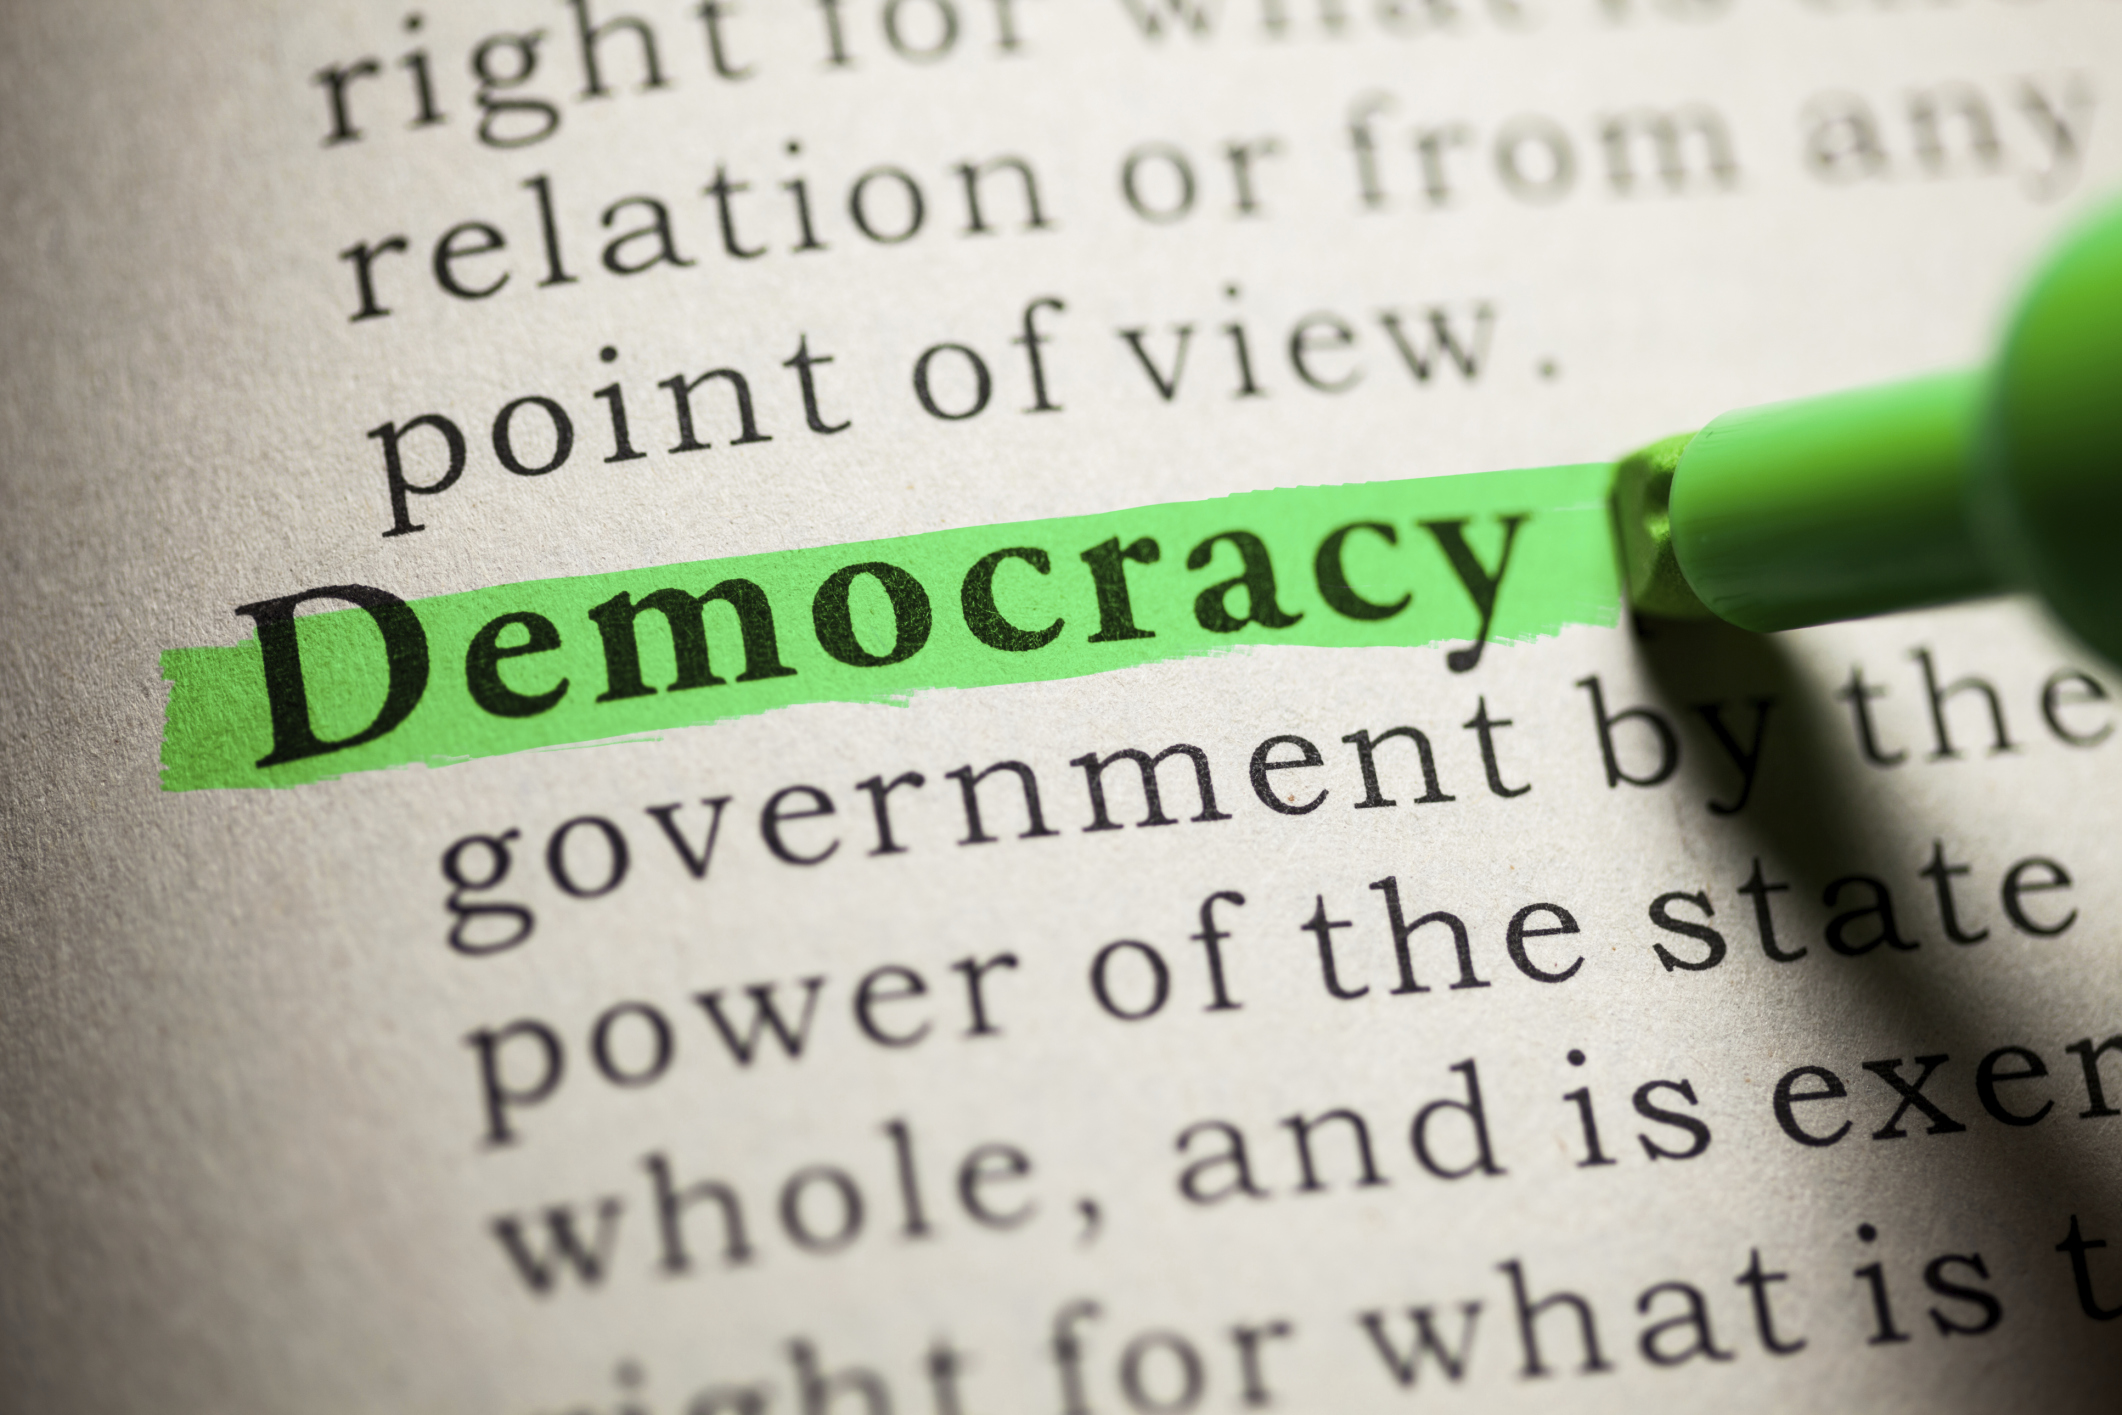 short speech on democracy 438 words